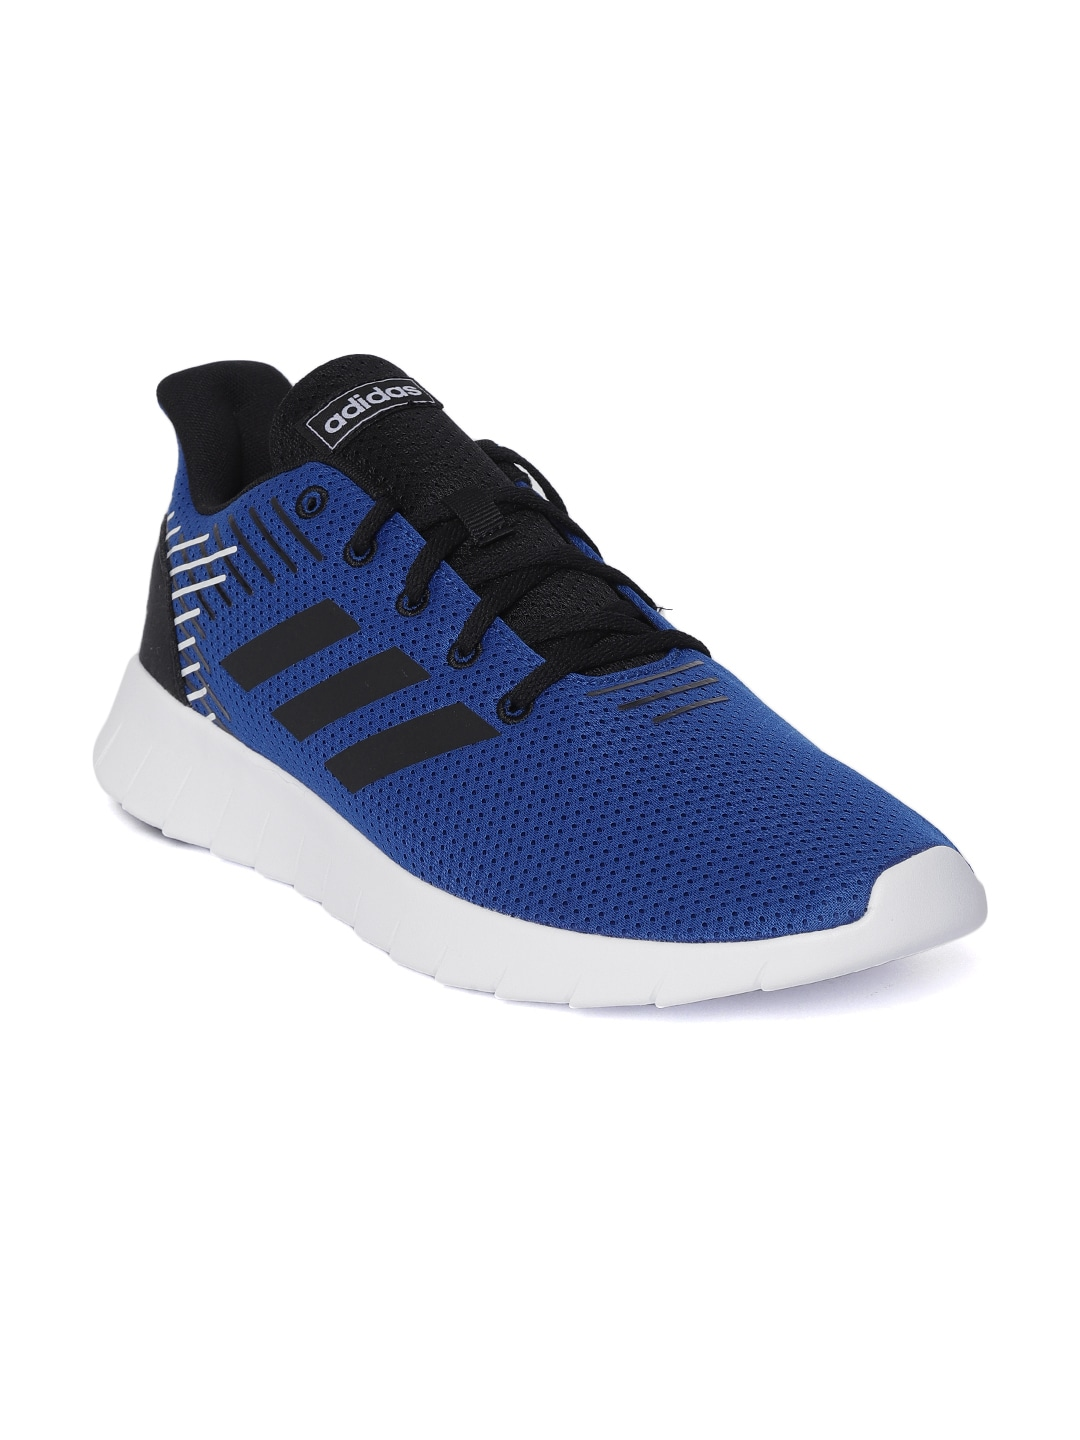 brand new 1bd2b 79670 Adidas White Shoes - Buy Adidas White Shoes Online in India